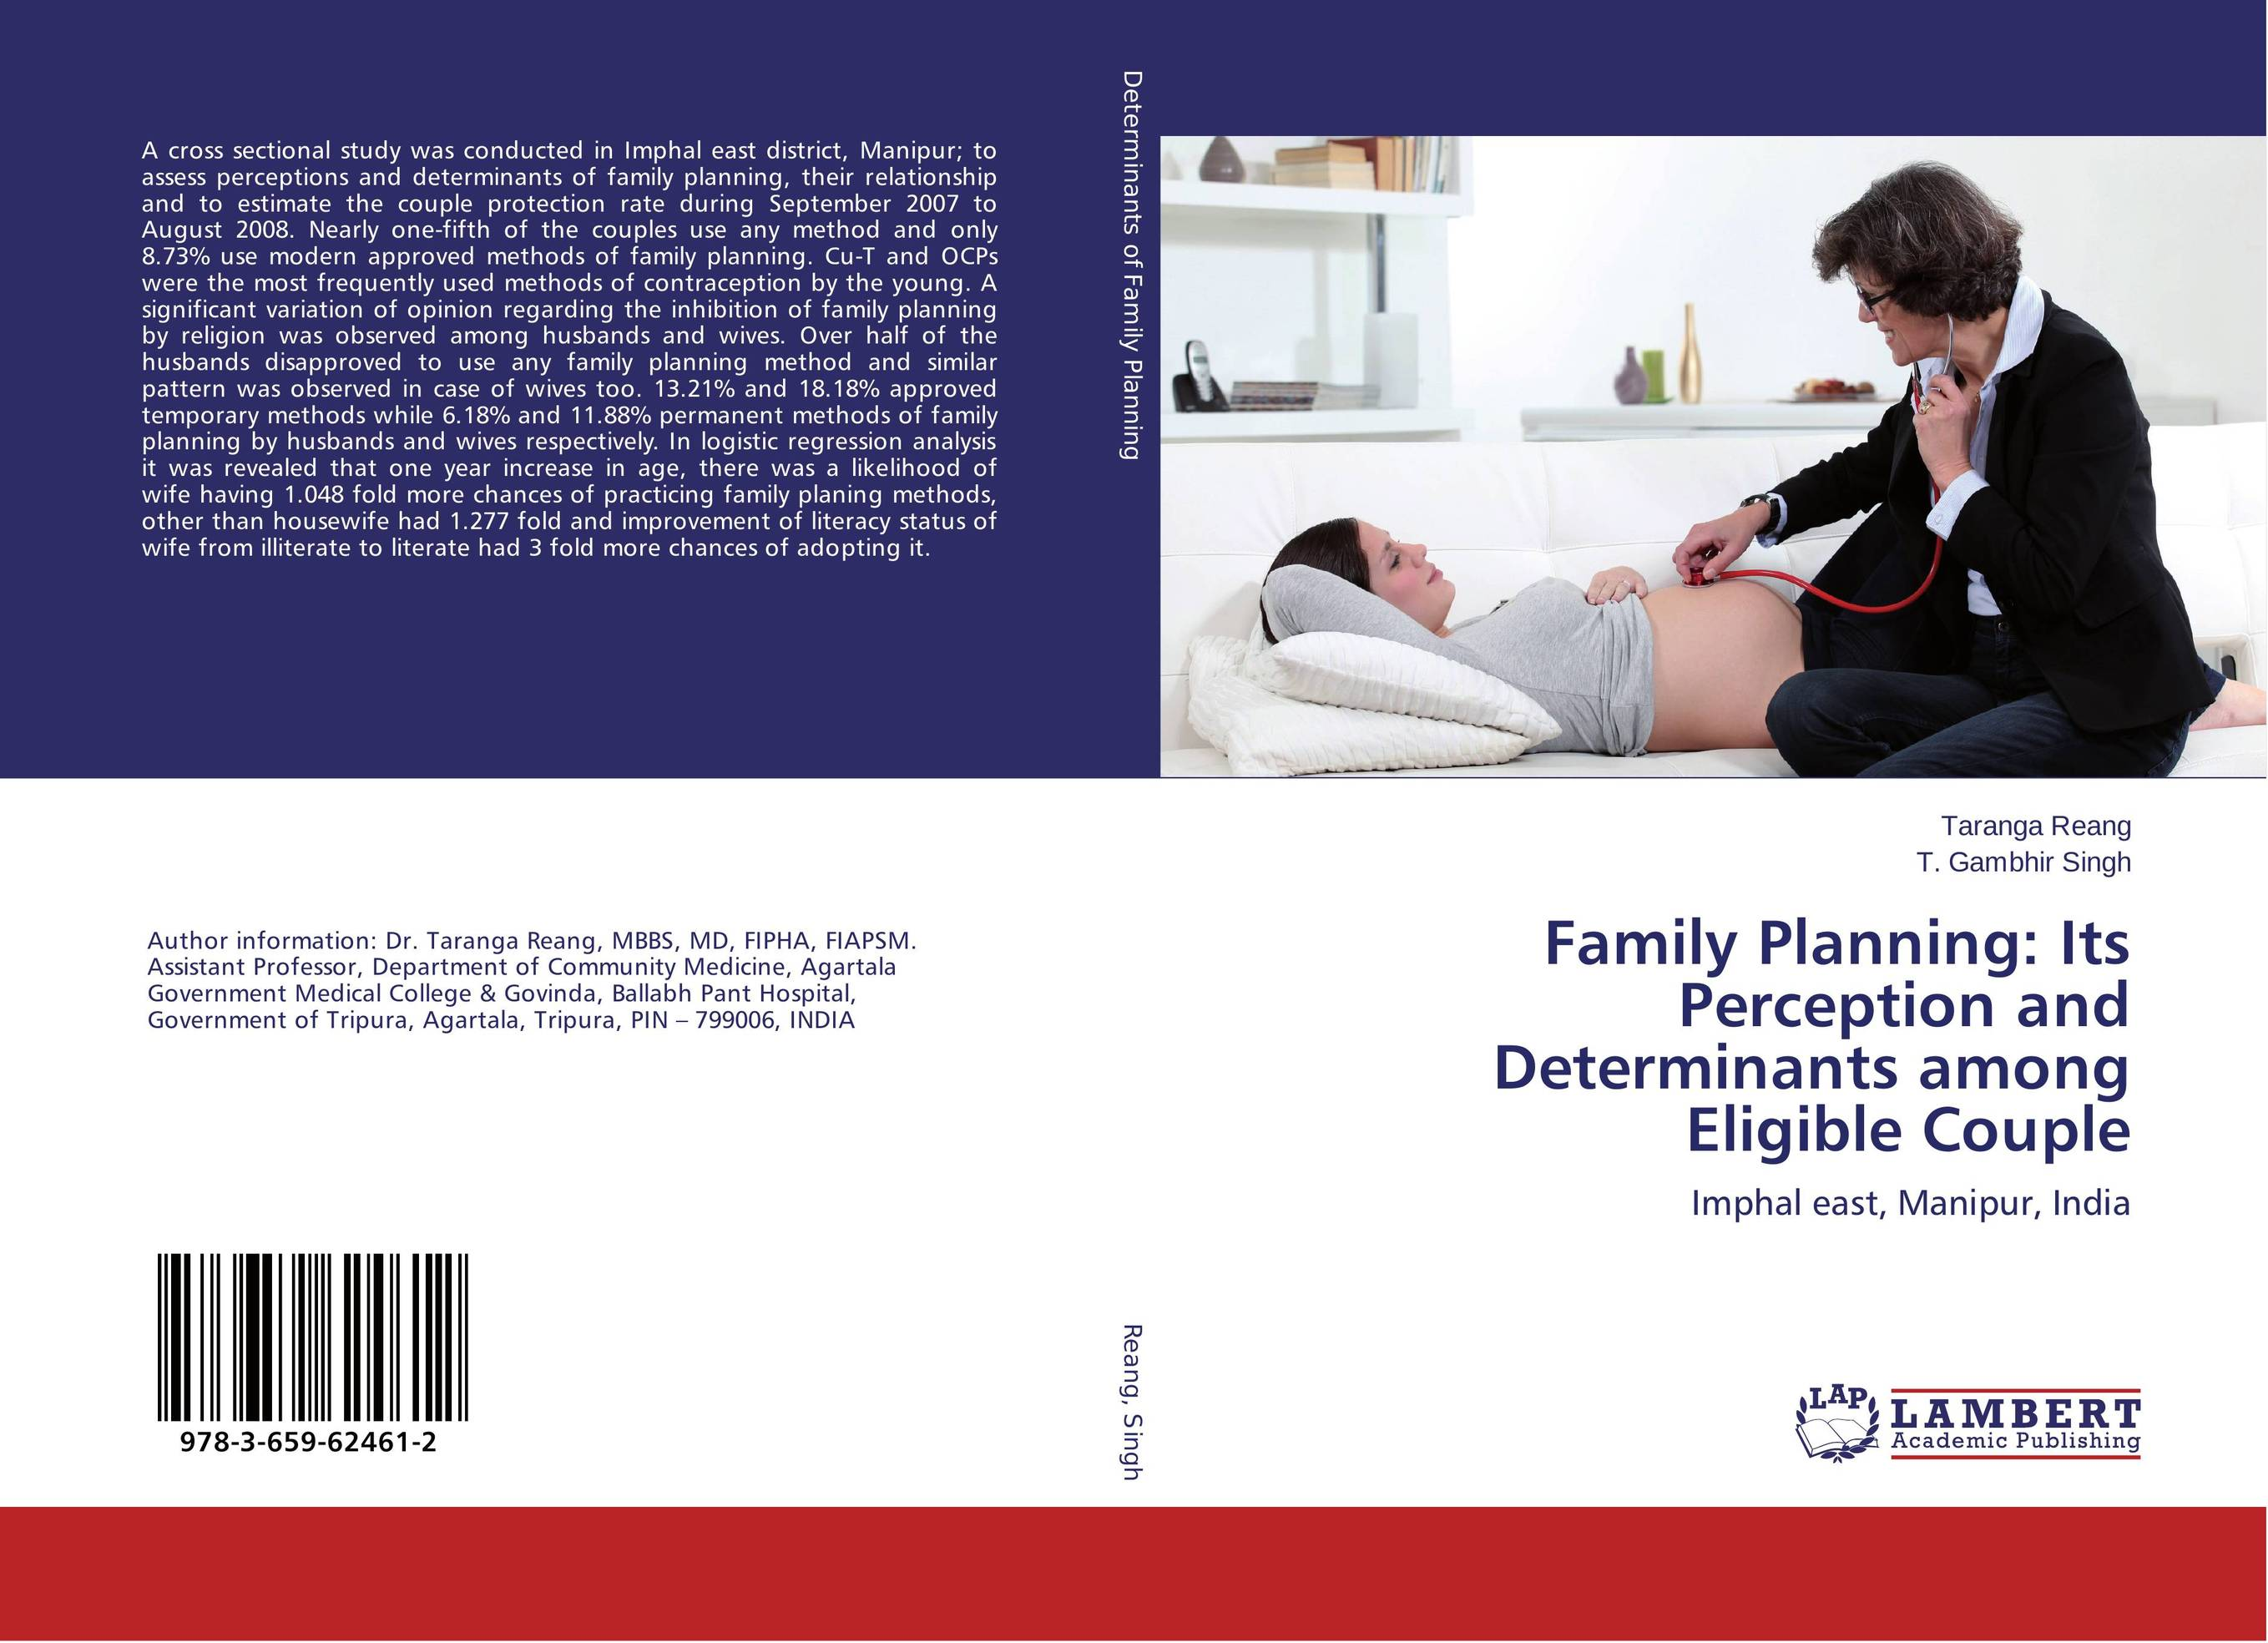 Family Planning: Its Perception and Determinants among Eligible Couple assessing family planning decision